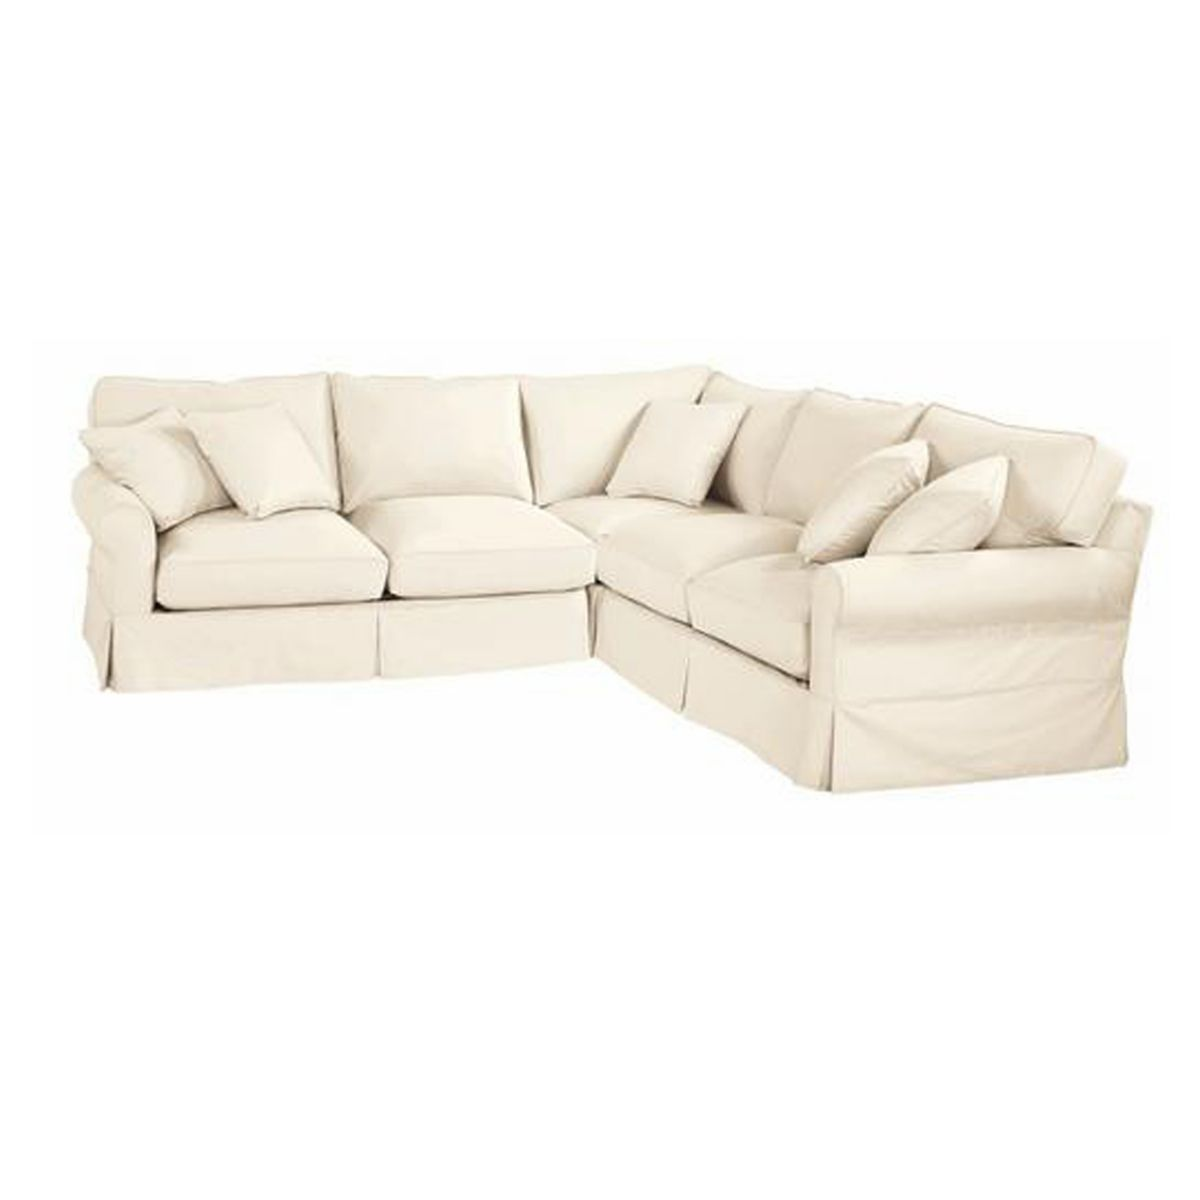 Baldwin 3 Piece Corner Loveseat Sectional Slipcover Special Order Fabrics Sectional Slipcover Slipcovers Love Seat